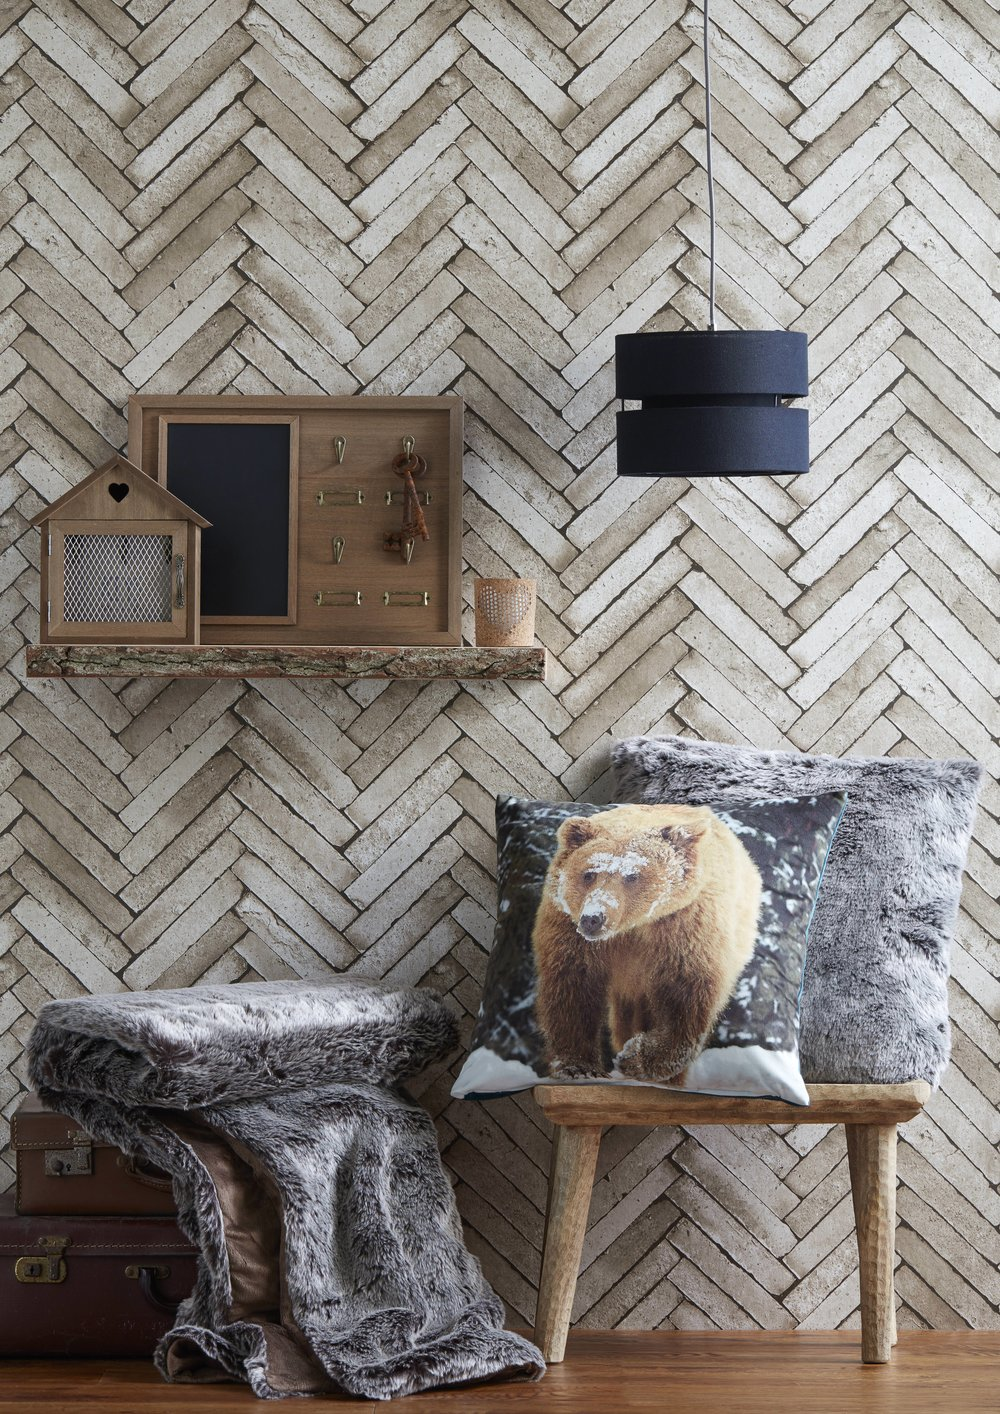 Herringbone patterned walls bring a strong textural element to the largest space in the room. Keep the rest of the decor simple to avoid overwhelm.  Image via B&Q